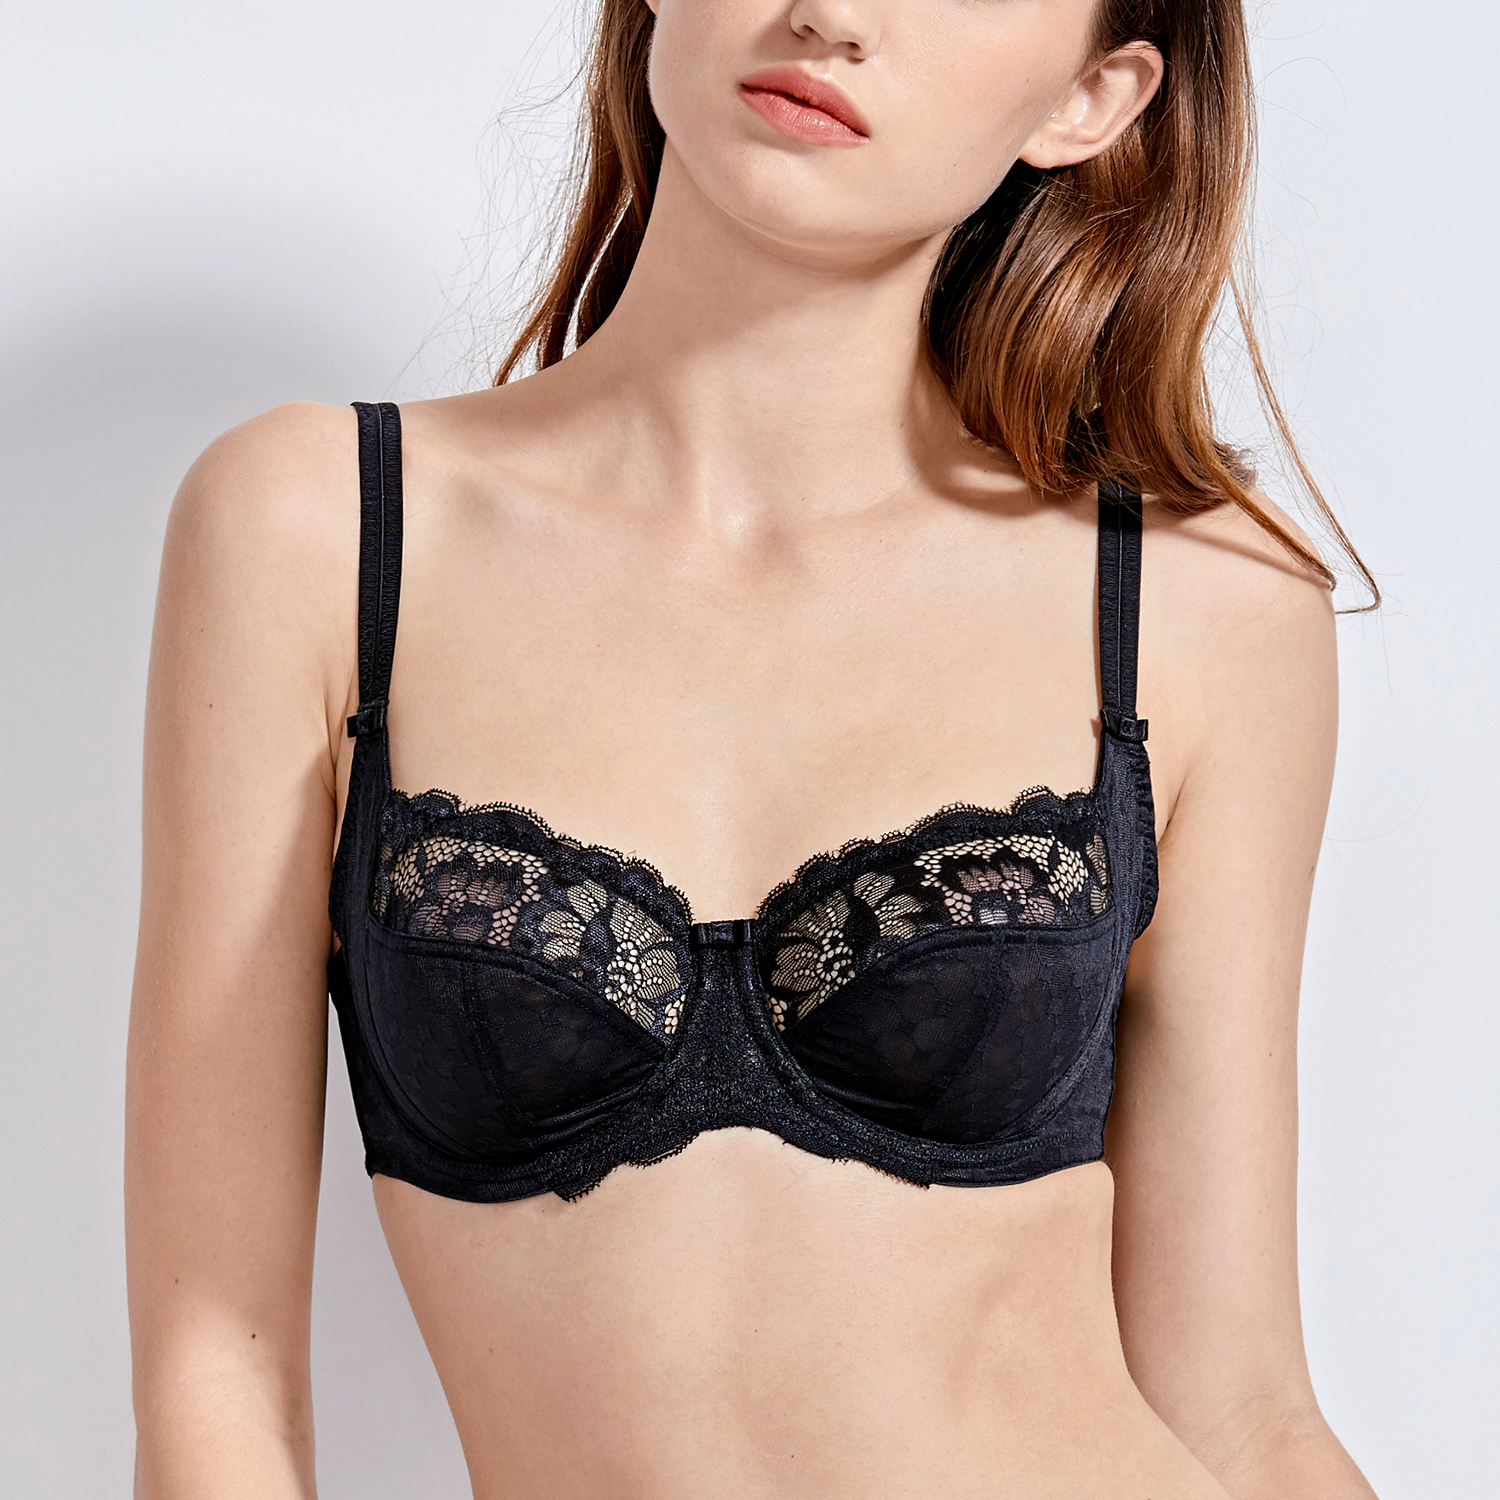 Women-039-s-Plus-Size-Full-Coverage-Underwire-Non-Padded-Support-Lace-Bra thumbnail 8